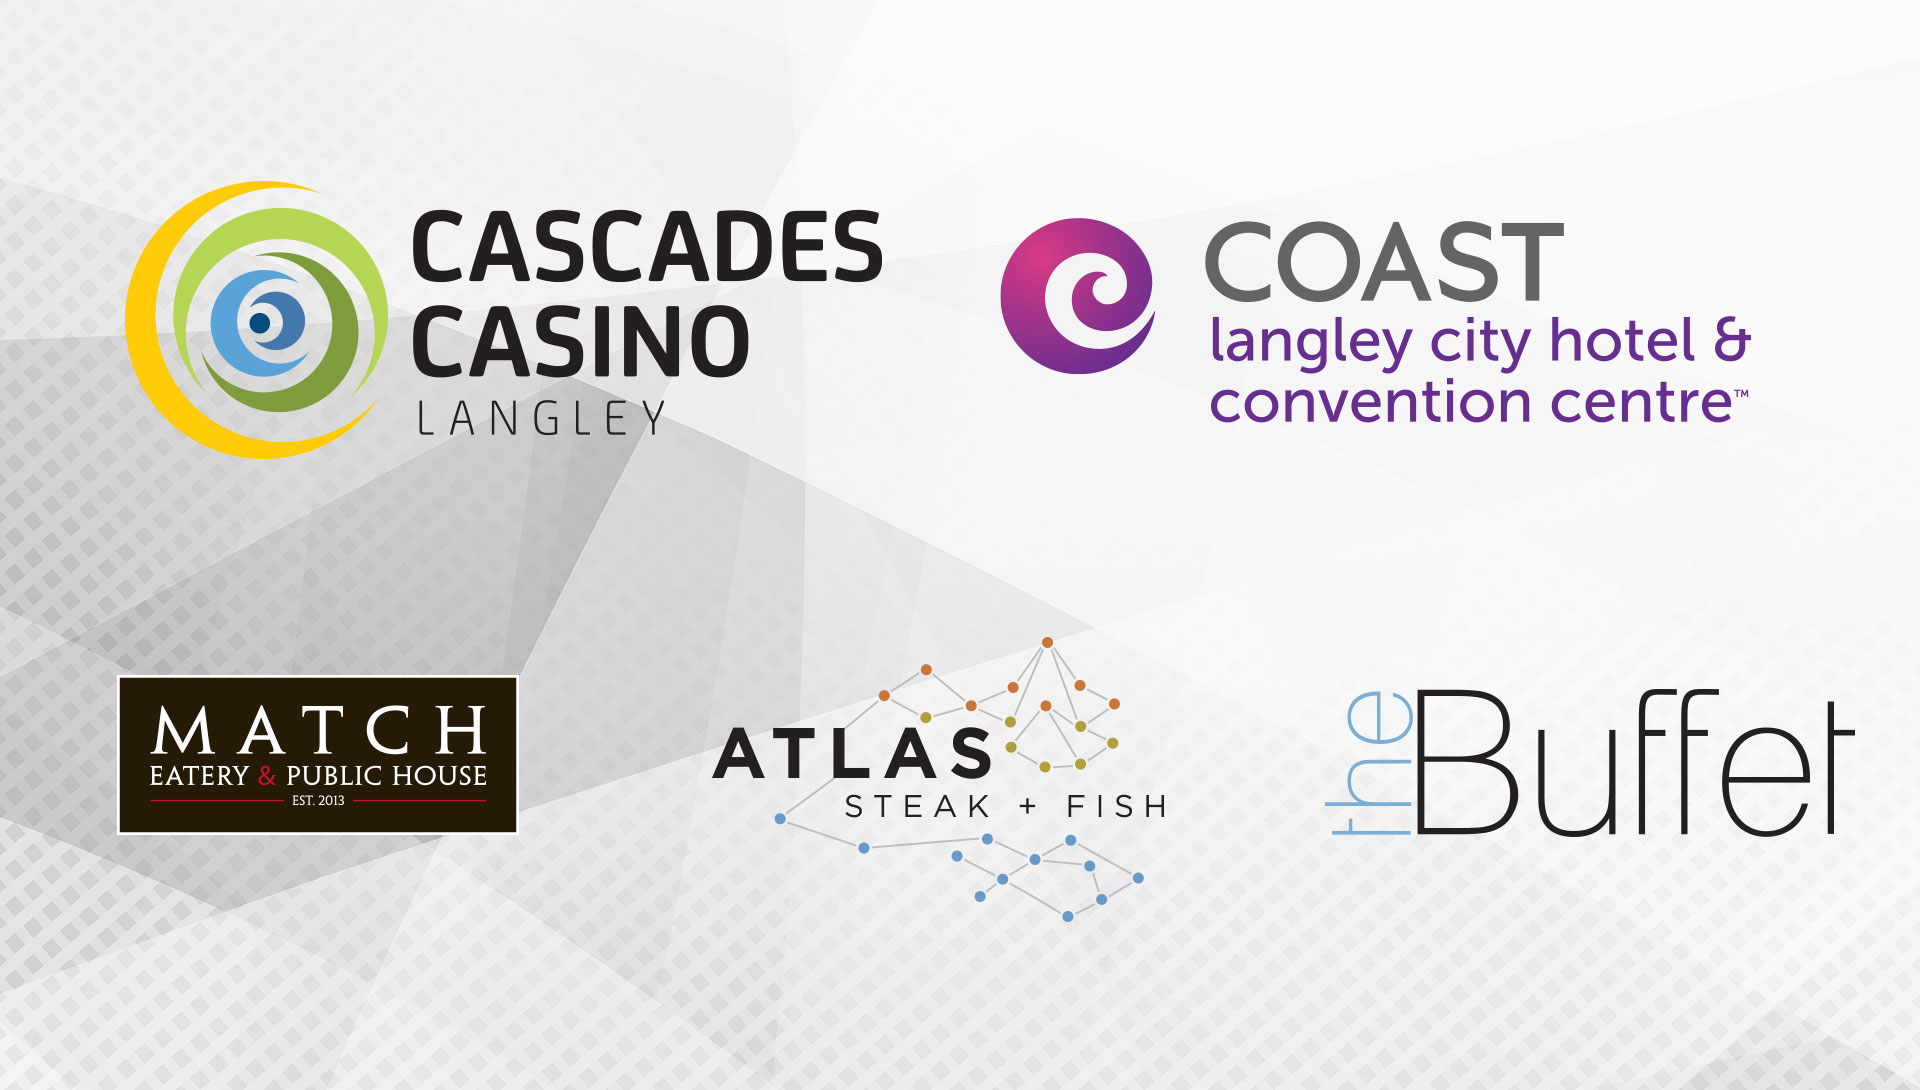 Cascades Casino Resort Langley Unveils First Phase of a Full Property Renovation with Opening of Hotel & Convention Centre